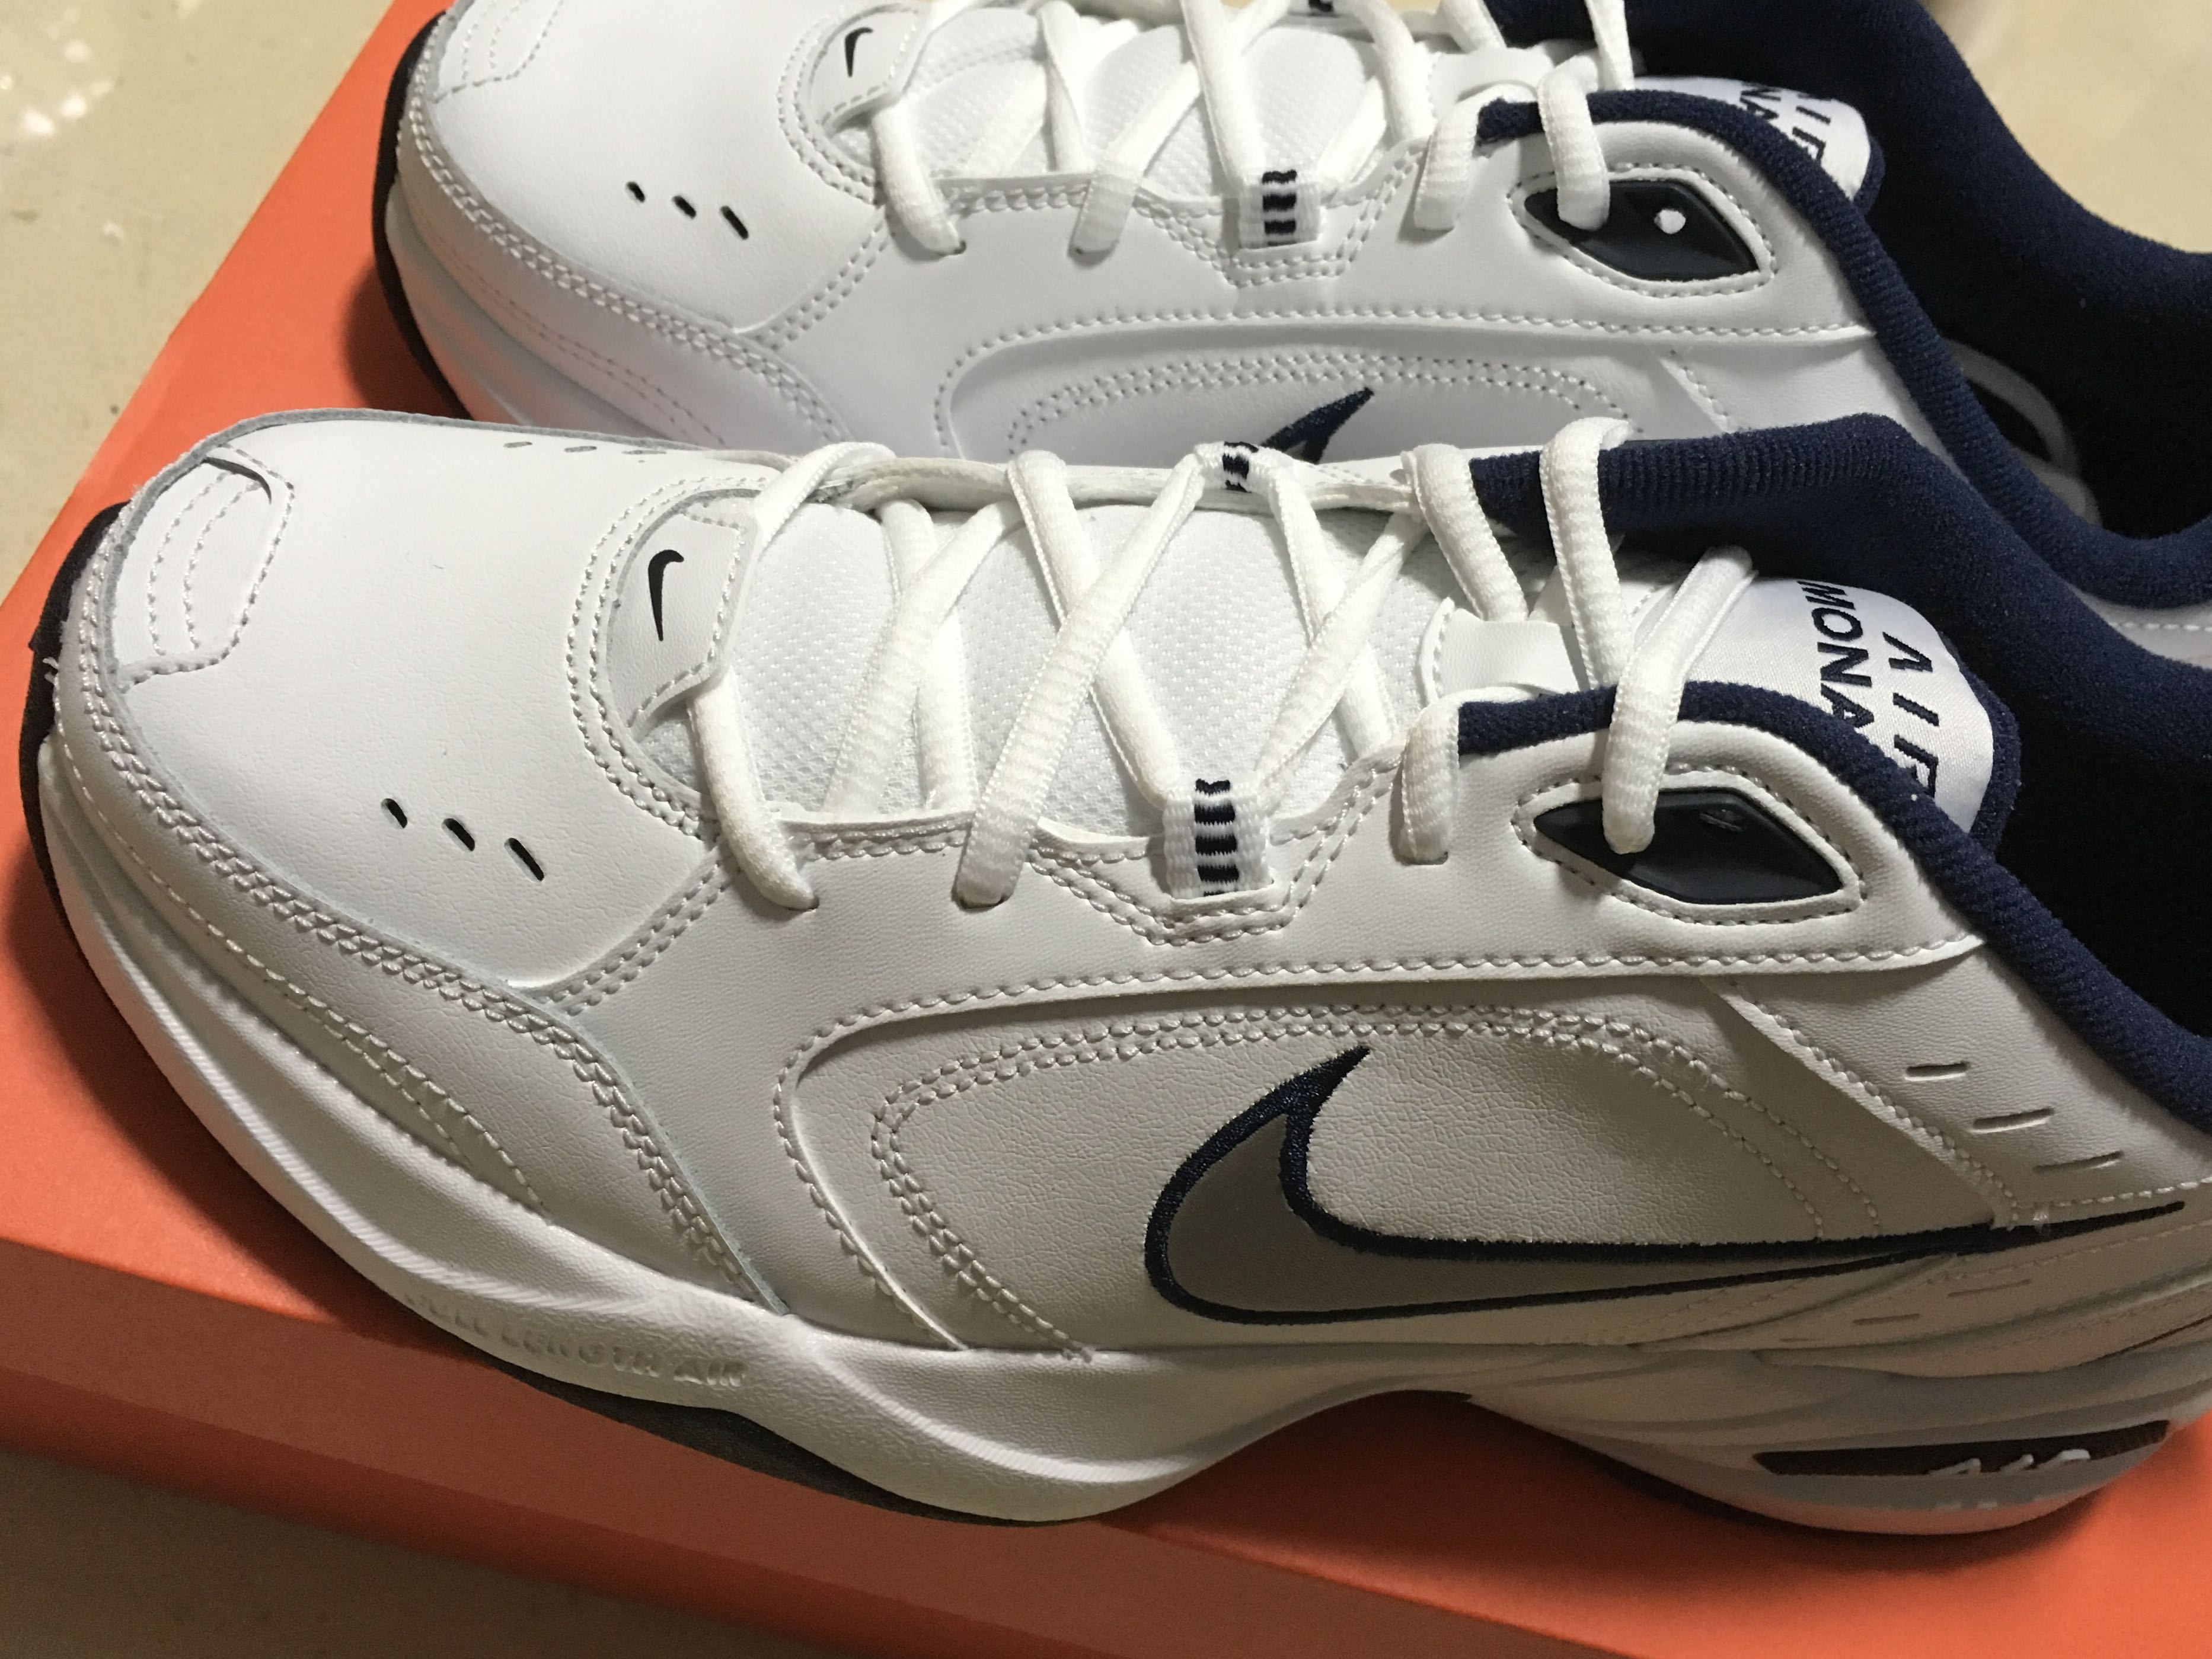 size 40 90a3f c51f8 NIKE AIR MONARCH IV, Men s Fashion, Footwear, Sneakers on Carousell